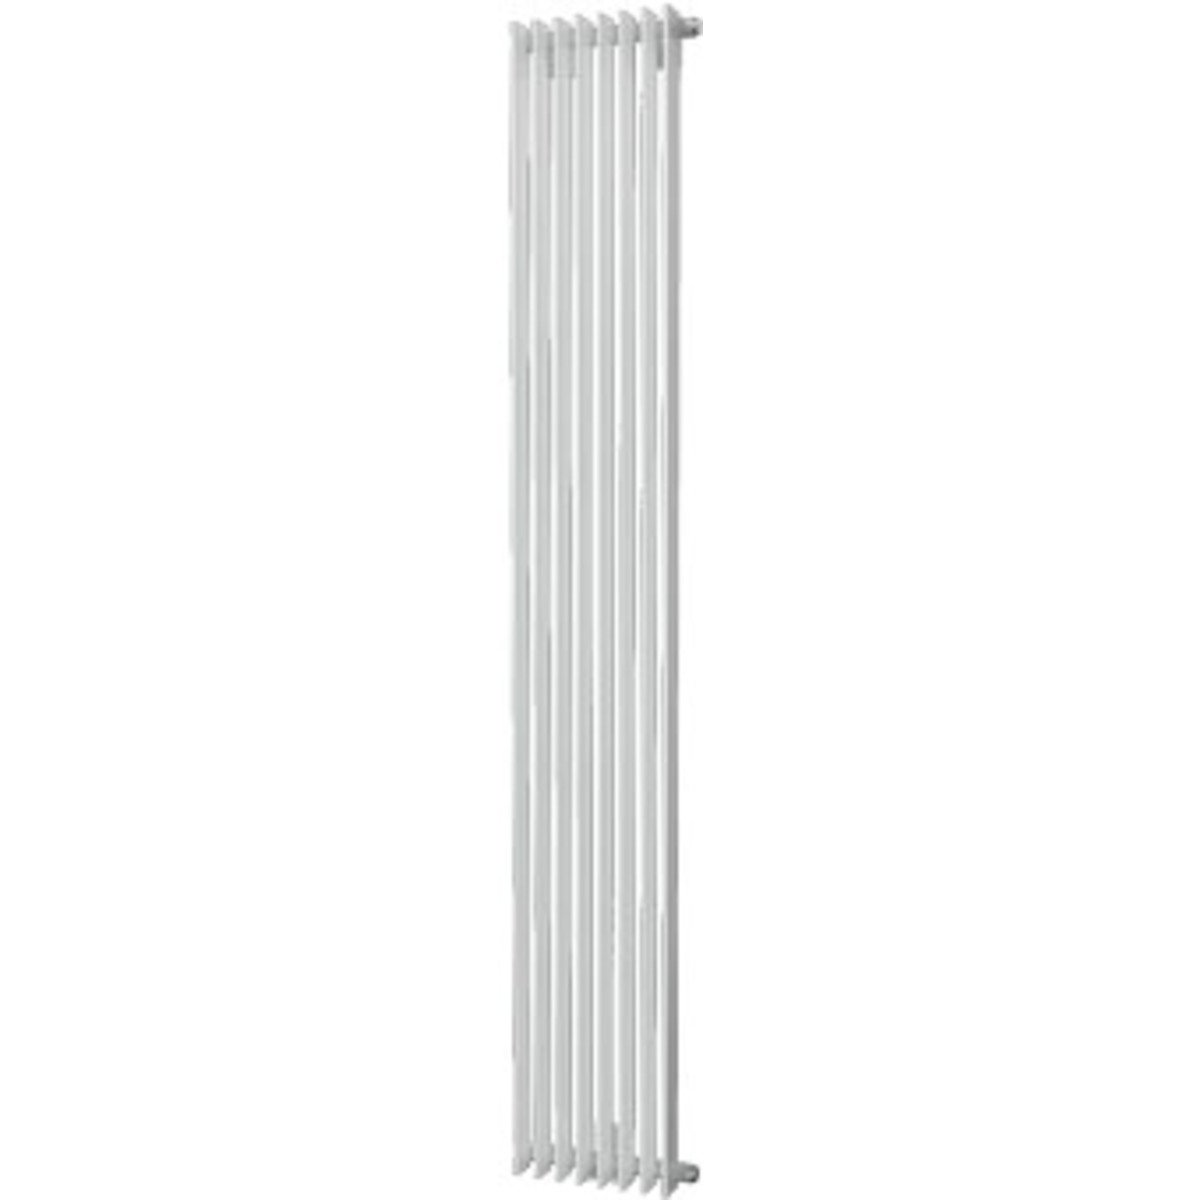 Plieger Radiator Plieger Antika Designradiator 1800x400mm 1215 Watt Wit